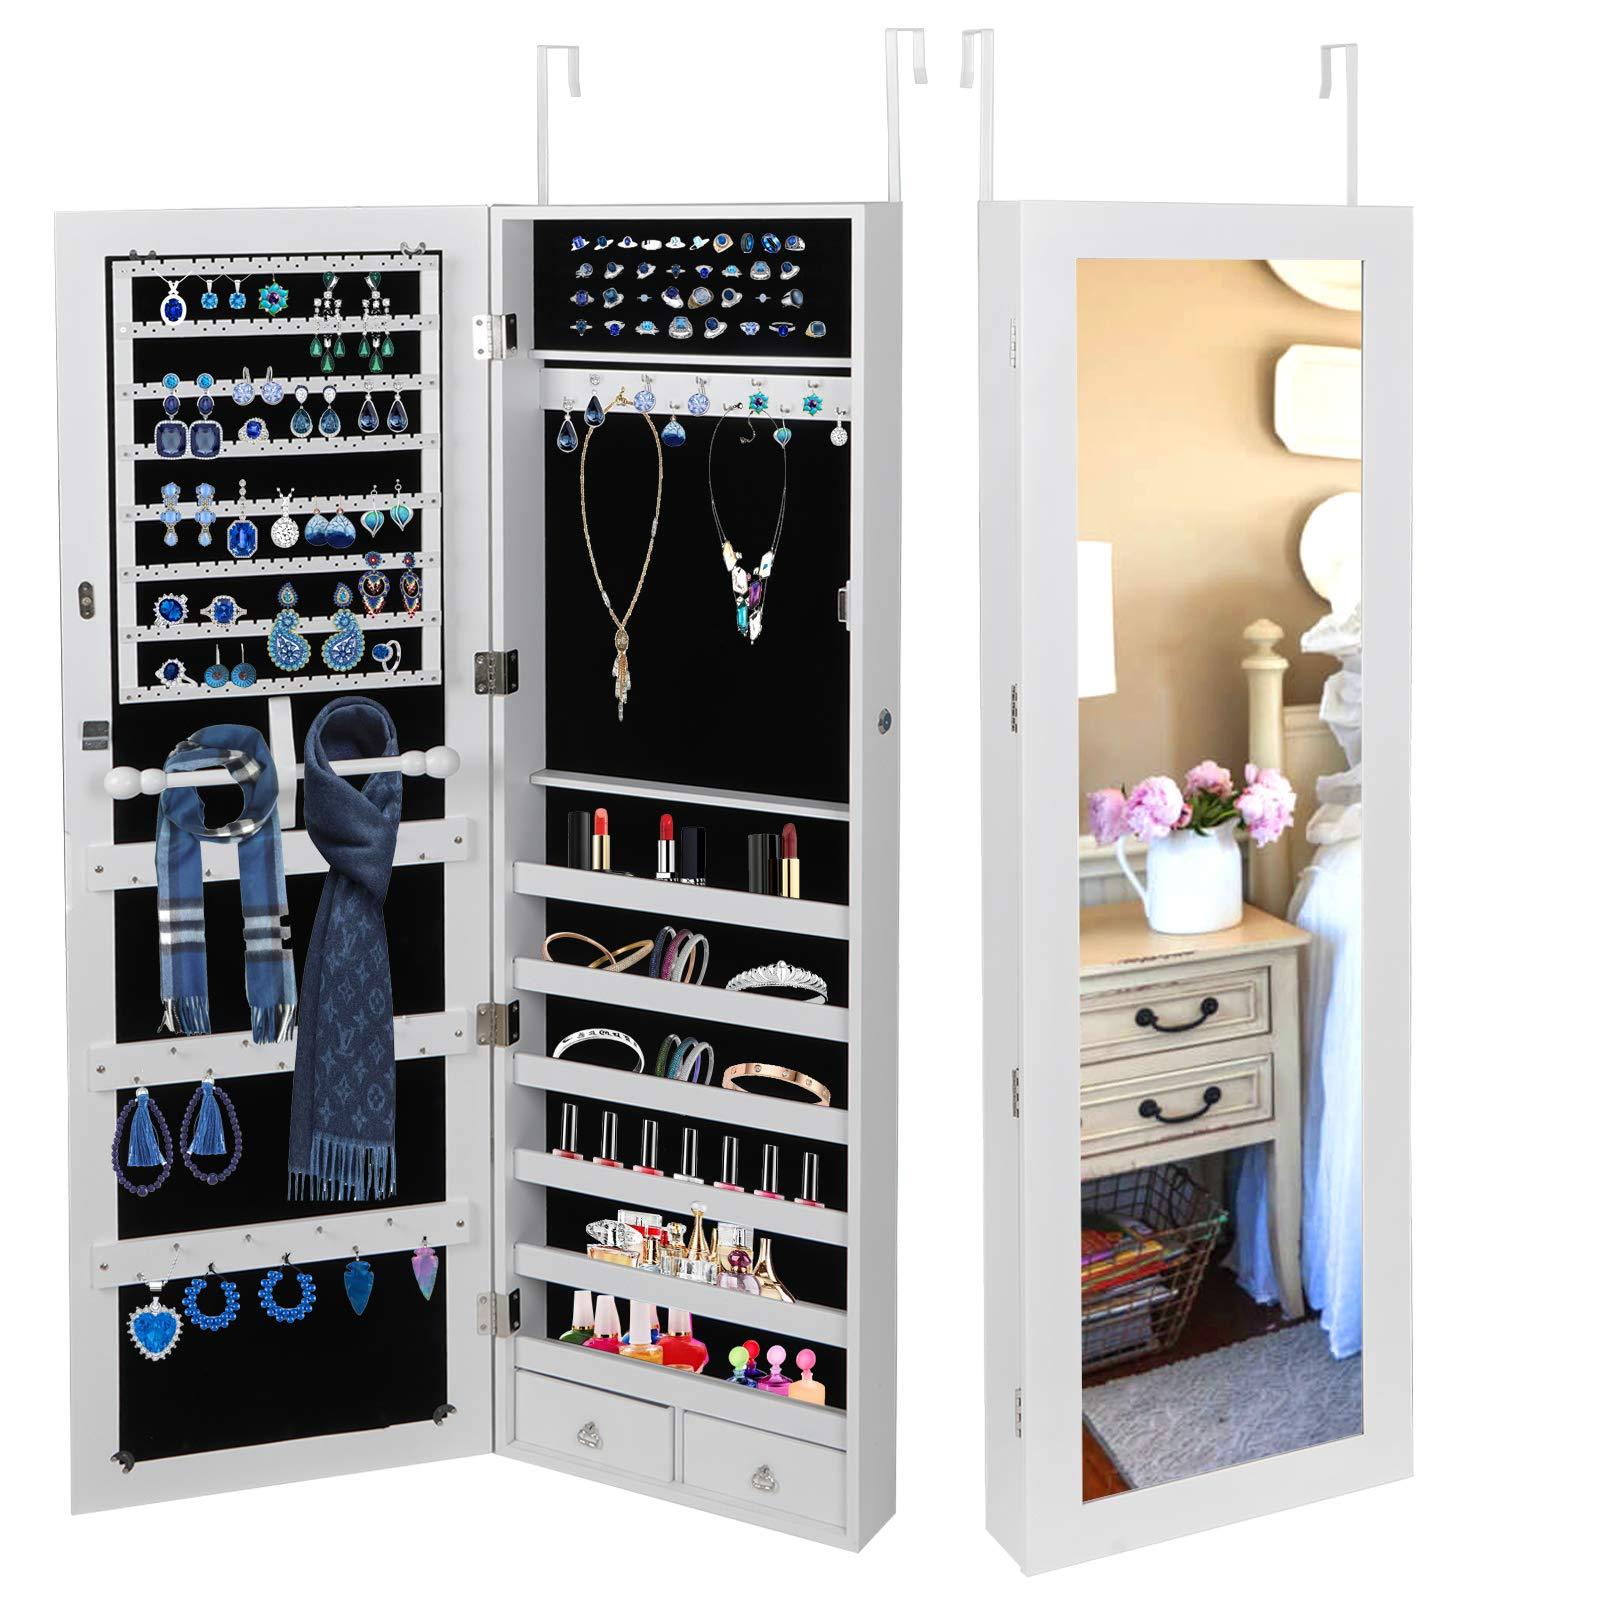 SUPER DEAL Jewelry Armoire Lockable Jewelry Cabinet Wall/Door Mounted Jewelry Organizer with Full Length Mirror and Drawers - 14.5W x 48H in - Frosty White by SUPER DEAL